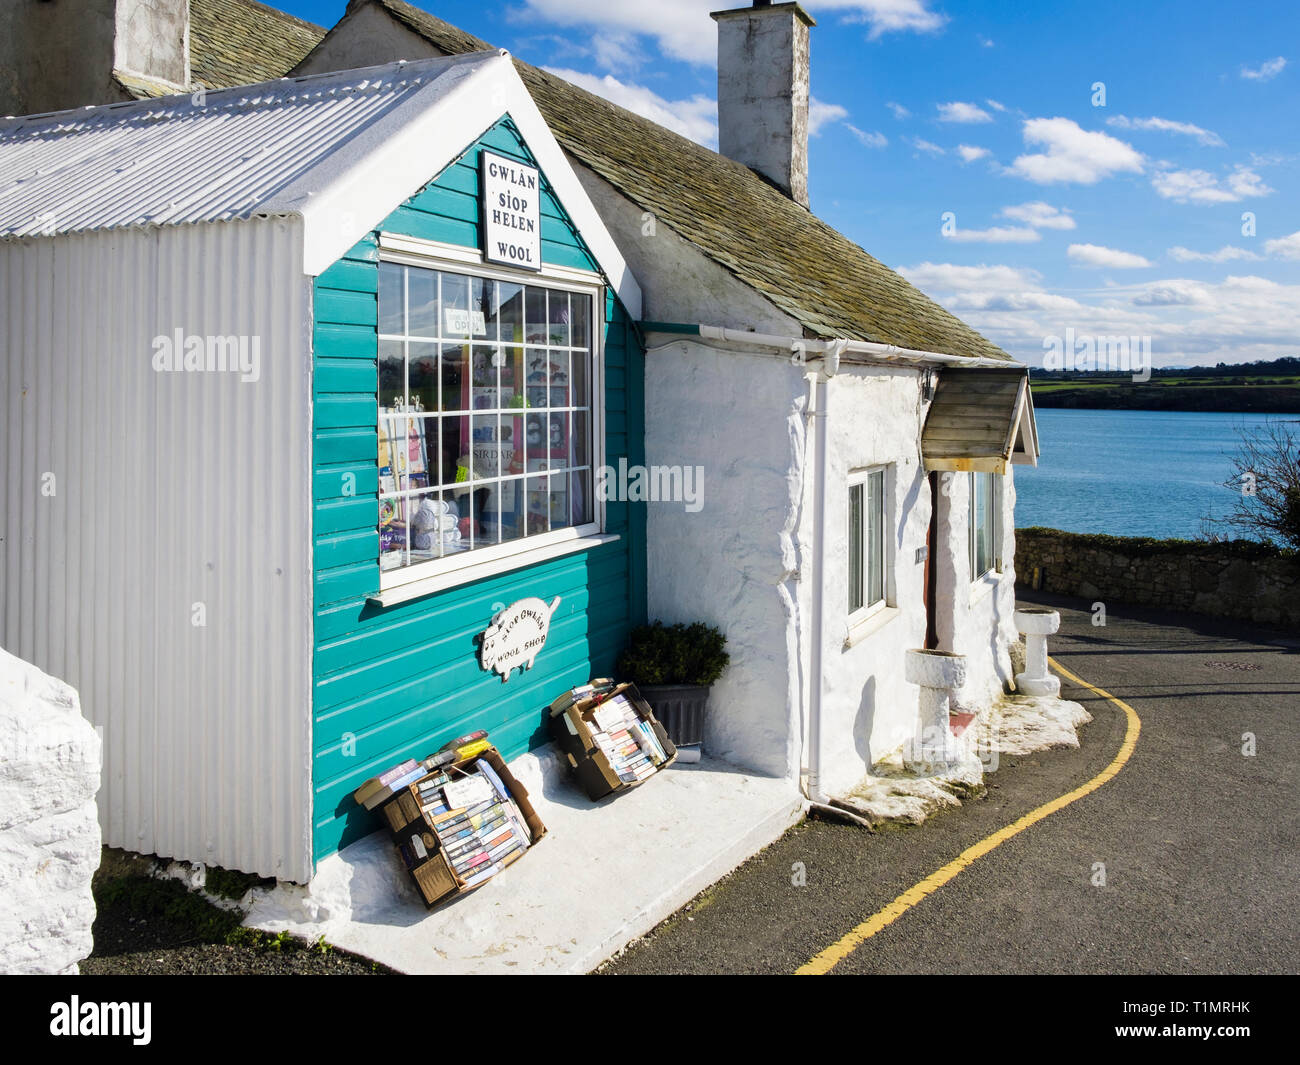 Wool shop and quaint tiny cottage in coastal village. Moelfre, Isle of Anglesey, Wales, UK, Britain Stock Photo